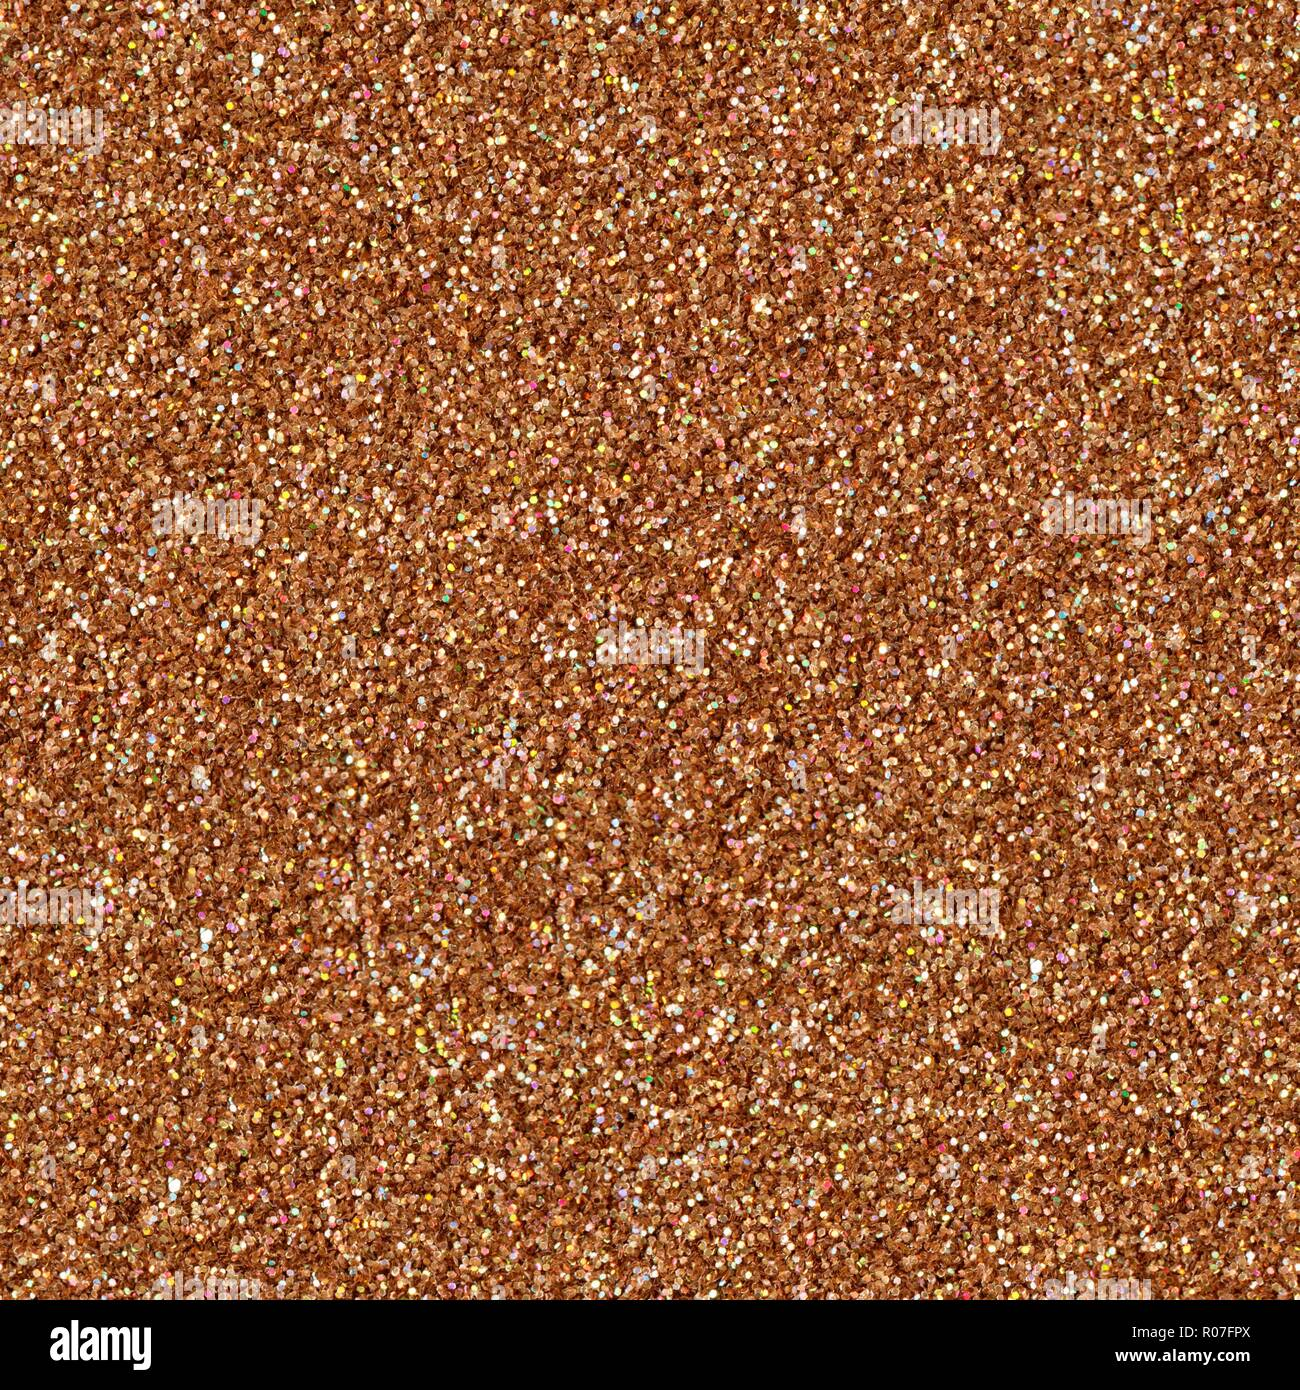 Brown glitter texture christmas abstract background. Seamless square texture. - Stock Image